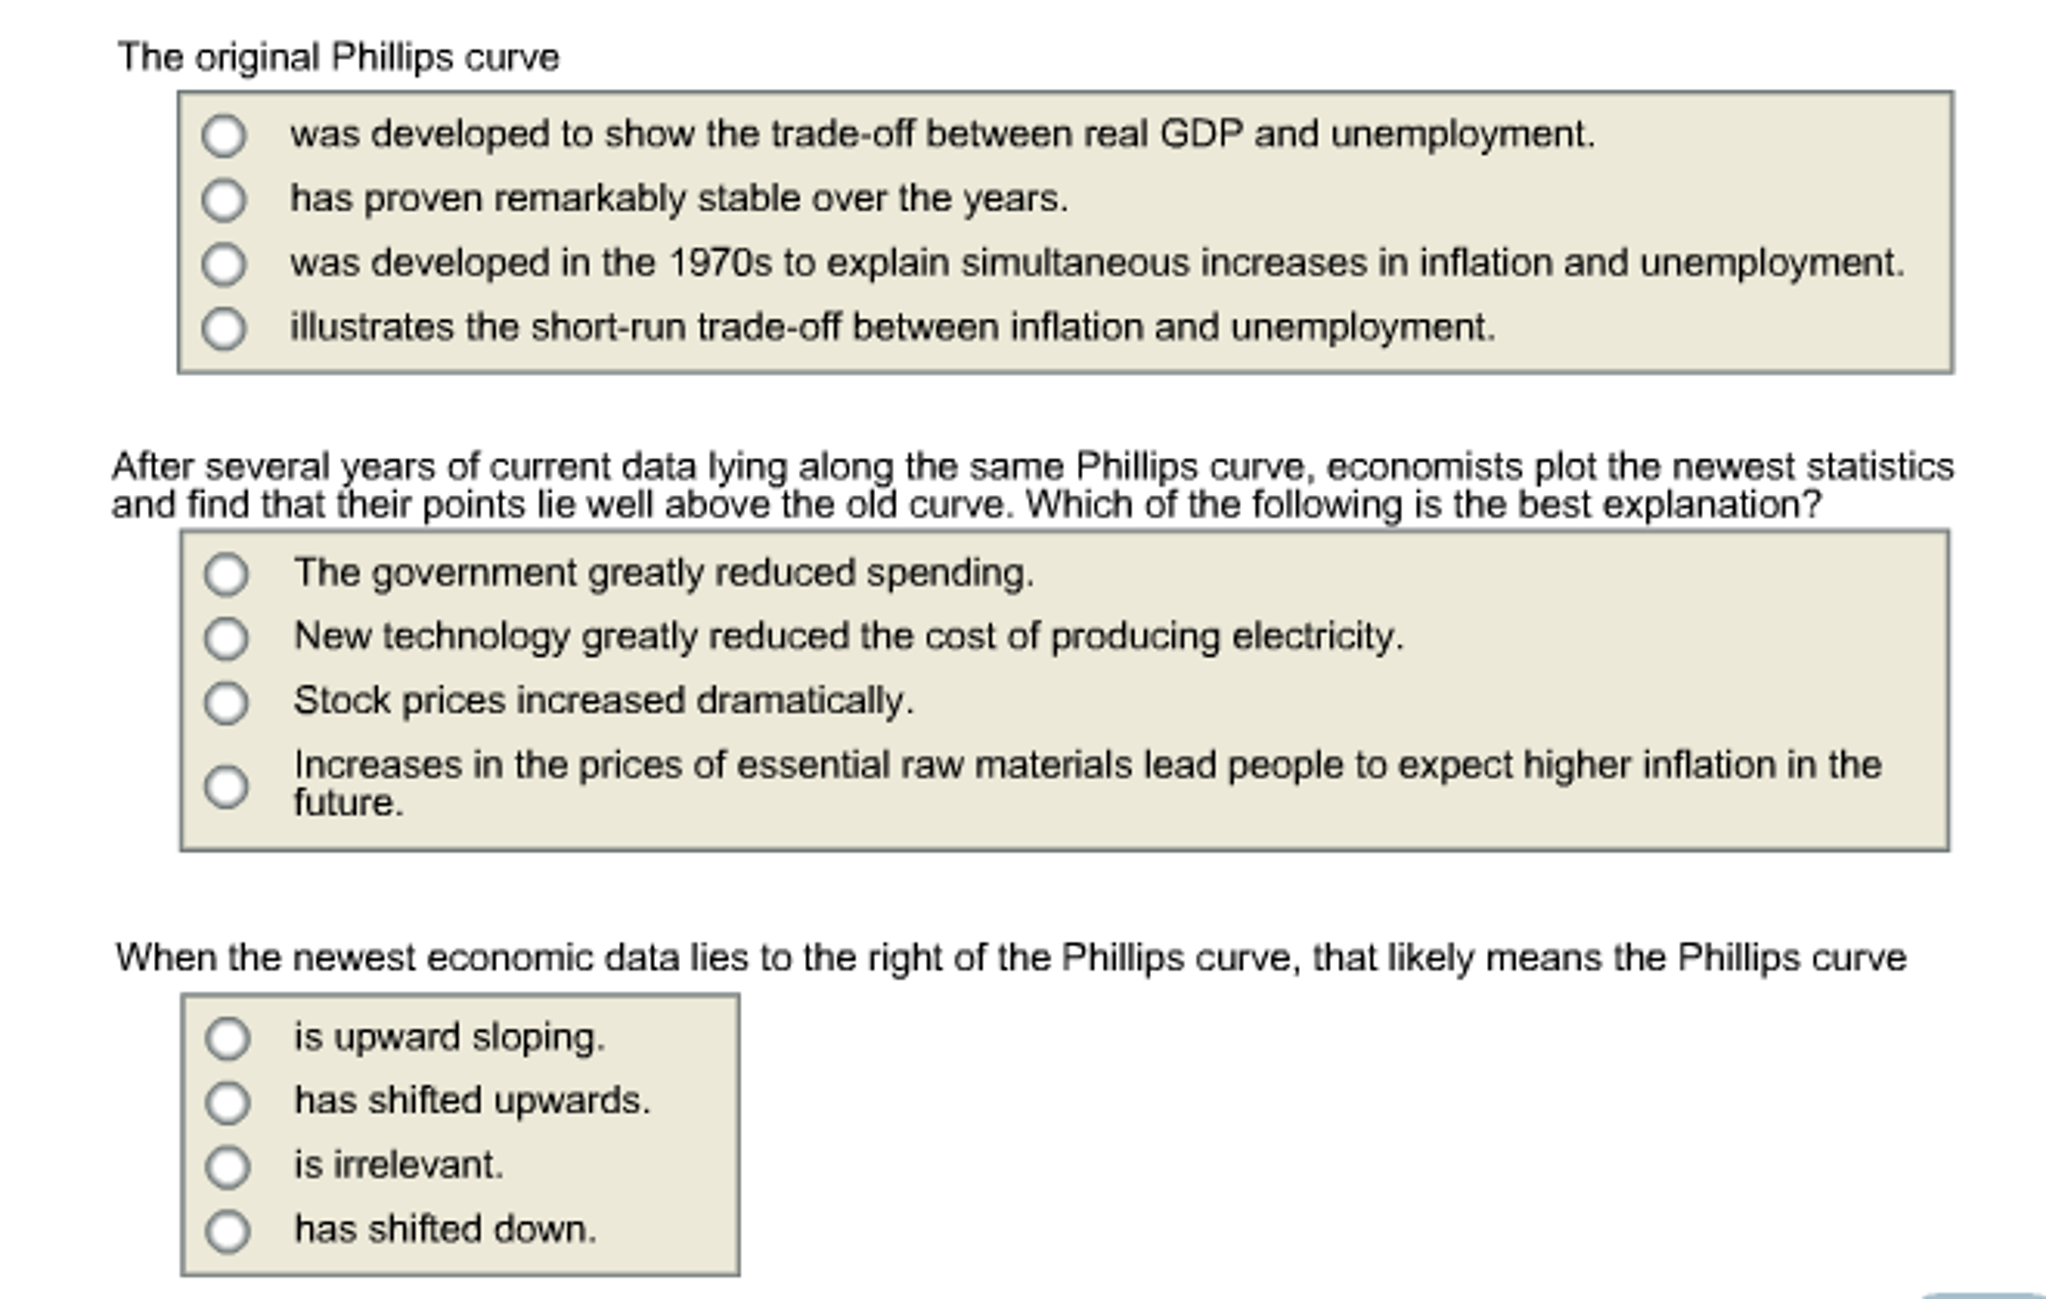 the original phillips curve was developed to show com question the original phillips curve was developed to show